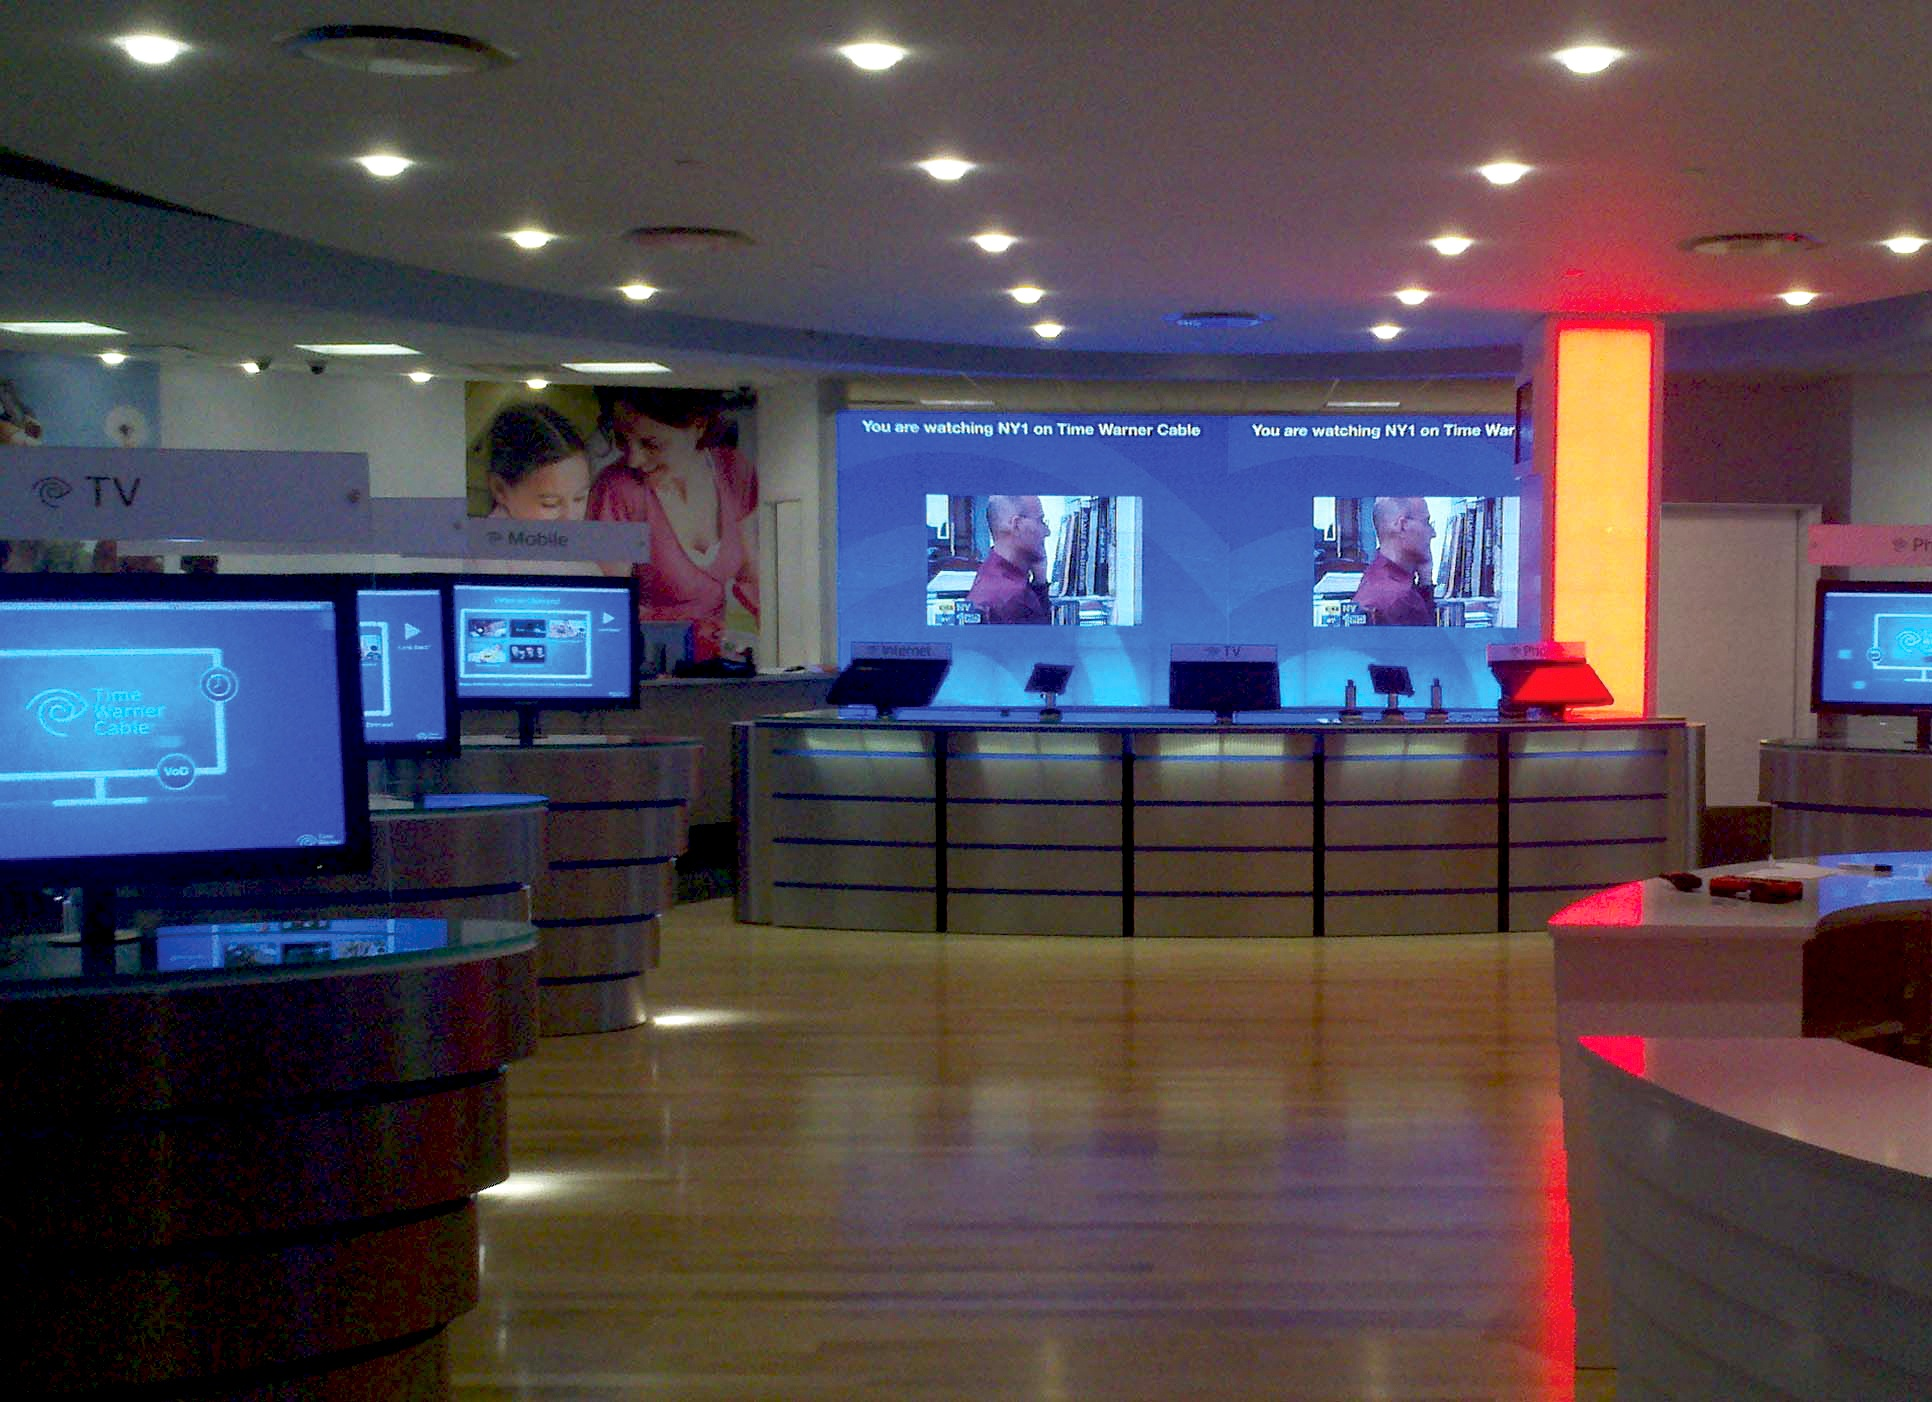 Time Warner Cable Selects Prysm's LPD in New Time Warner Cable Location